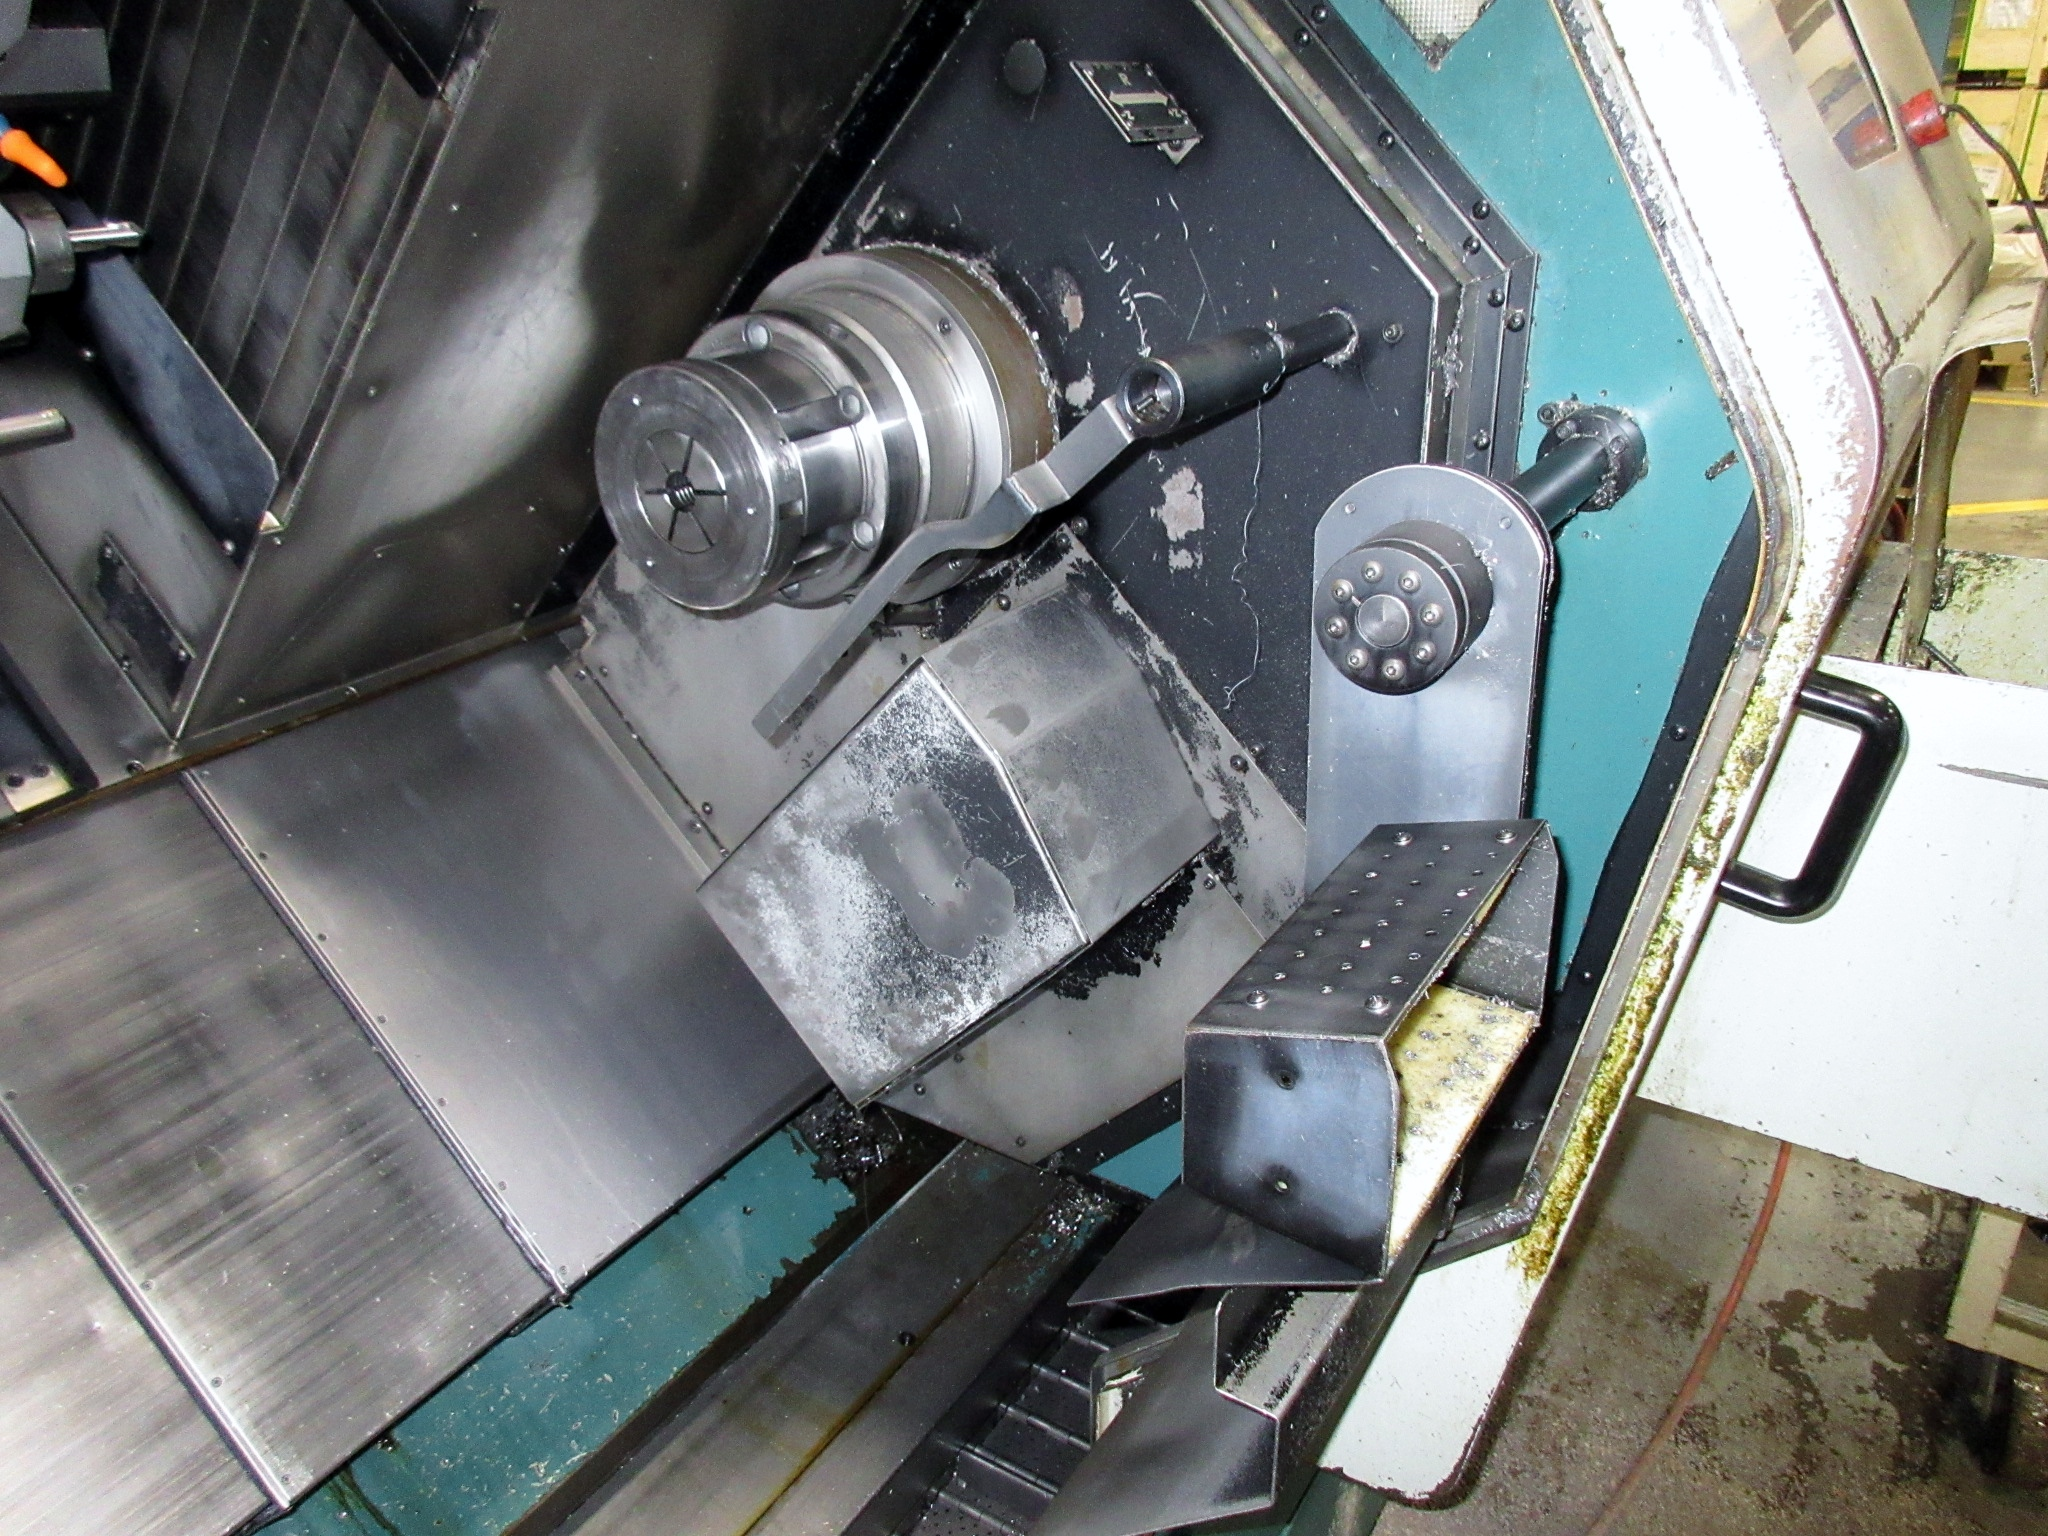 NAKAMURA TOME TW-30MM 7-AXIS CNC TWIN SPINDLE TURNING CENTER - Image 10 of 21